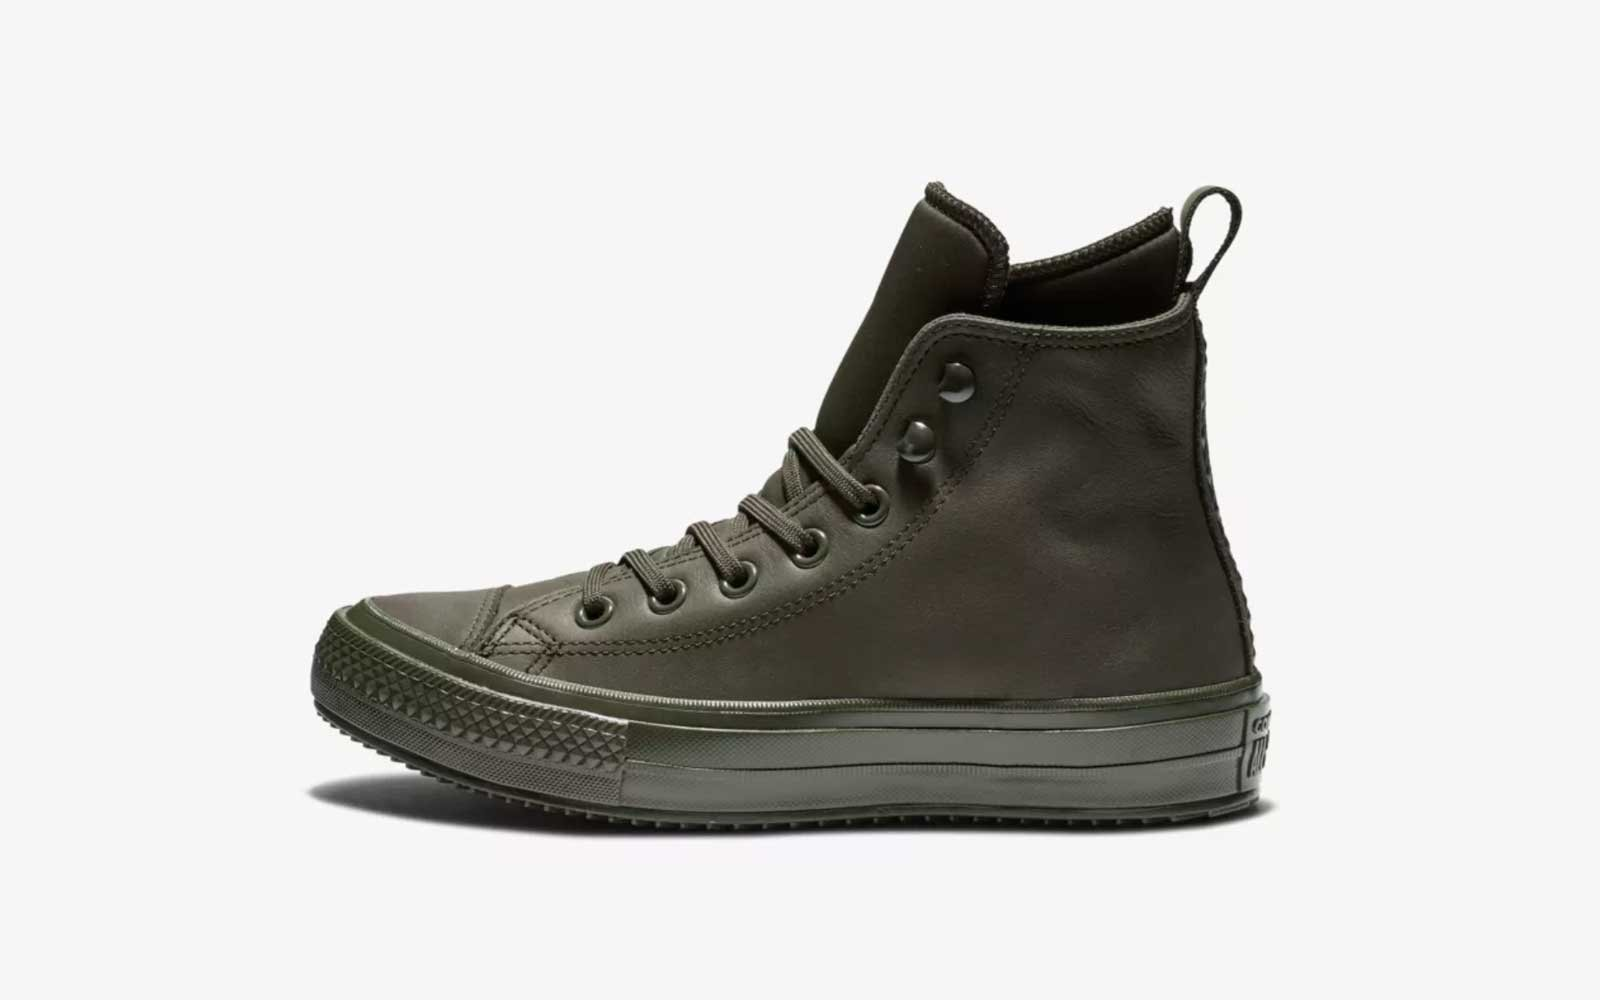 Converse Chuck Taylor All Star Waterproof High Top Boot